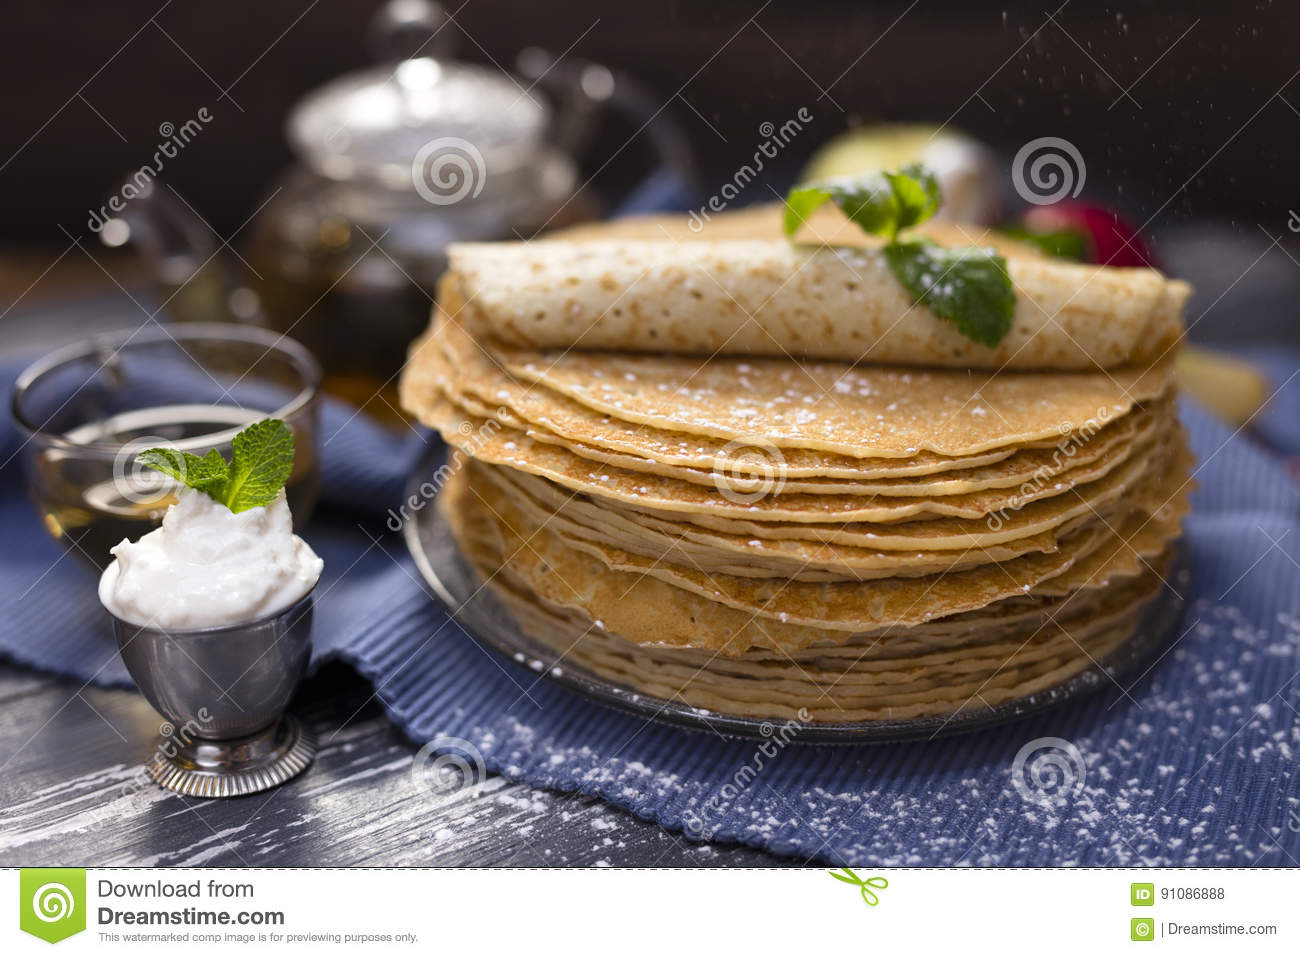 A lot of homemade crepes